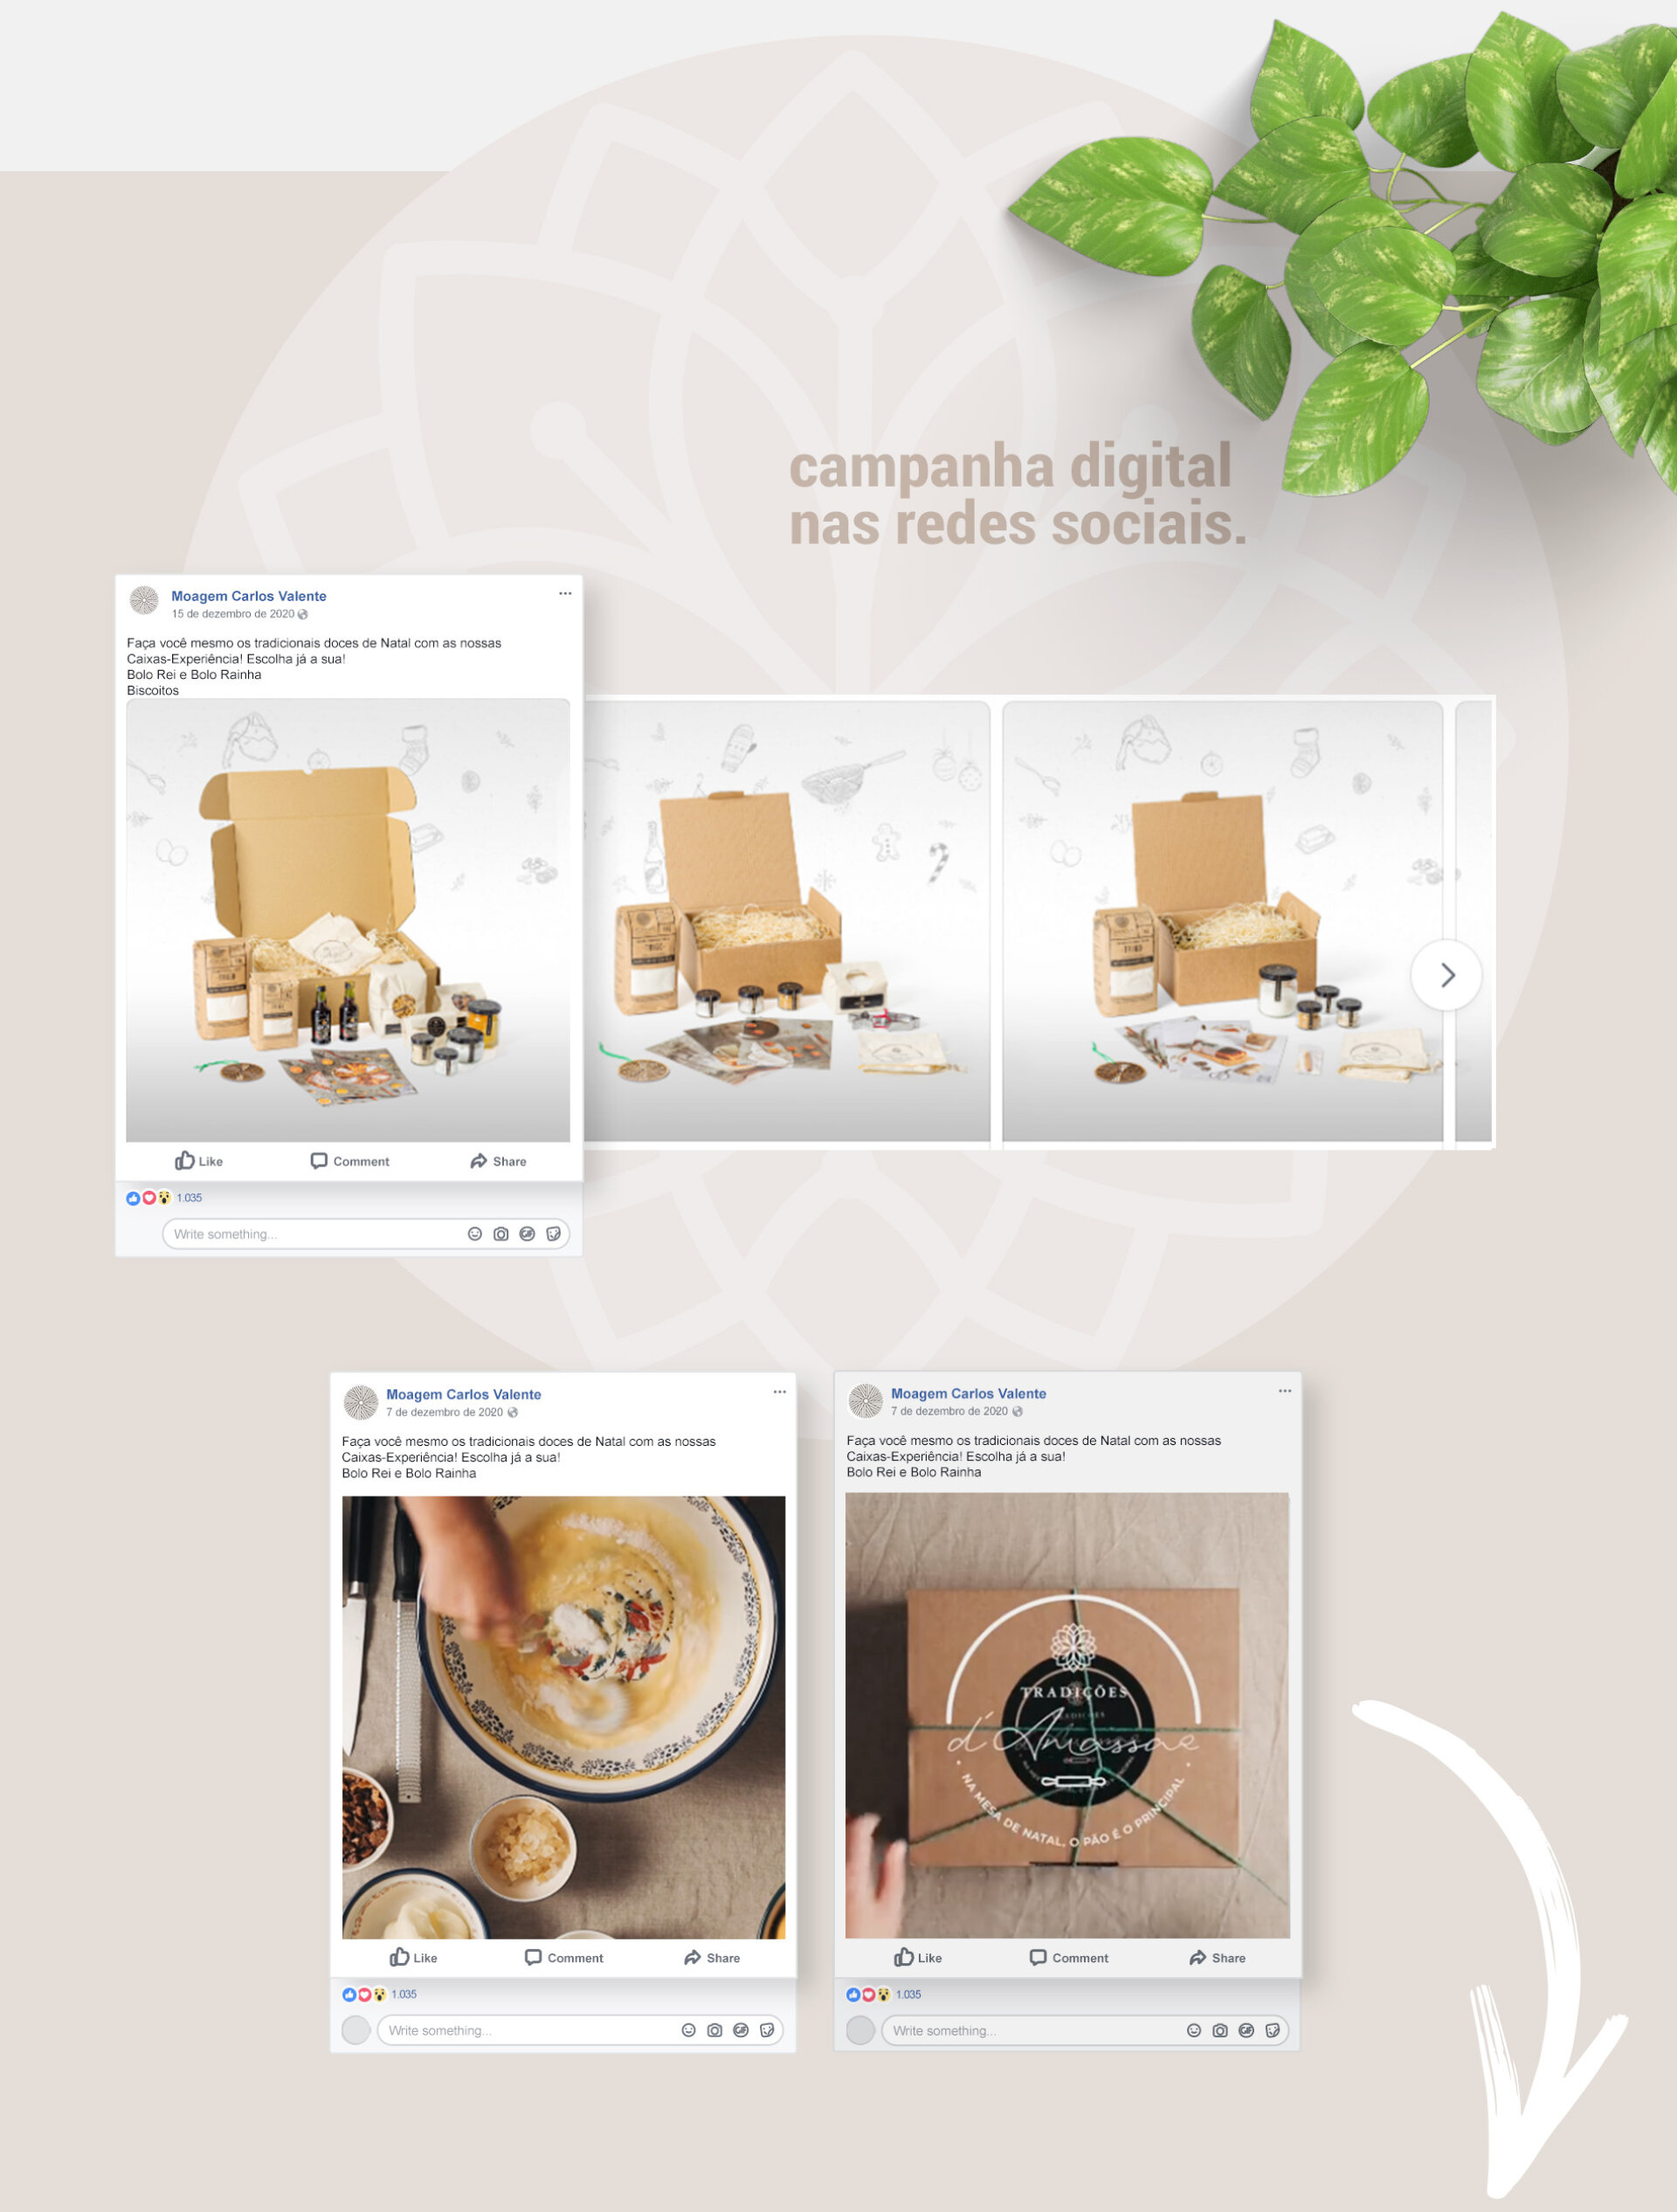 campanhas-digitais-facebook-instagram-incentea-marketing-inovacao